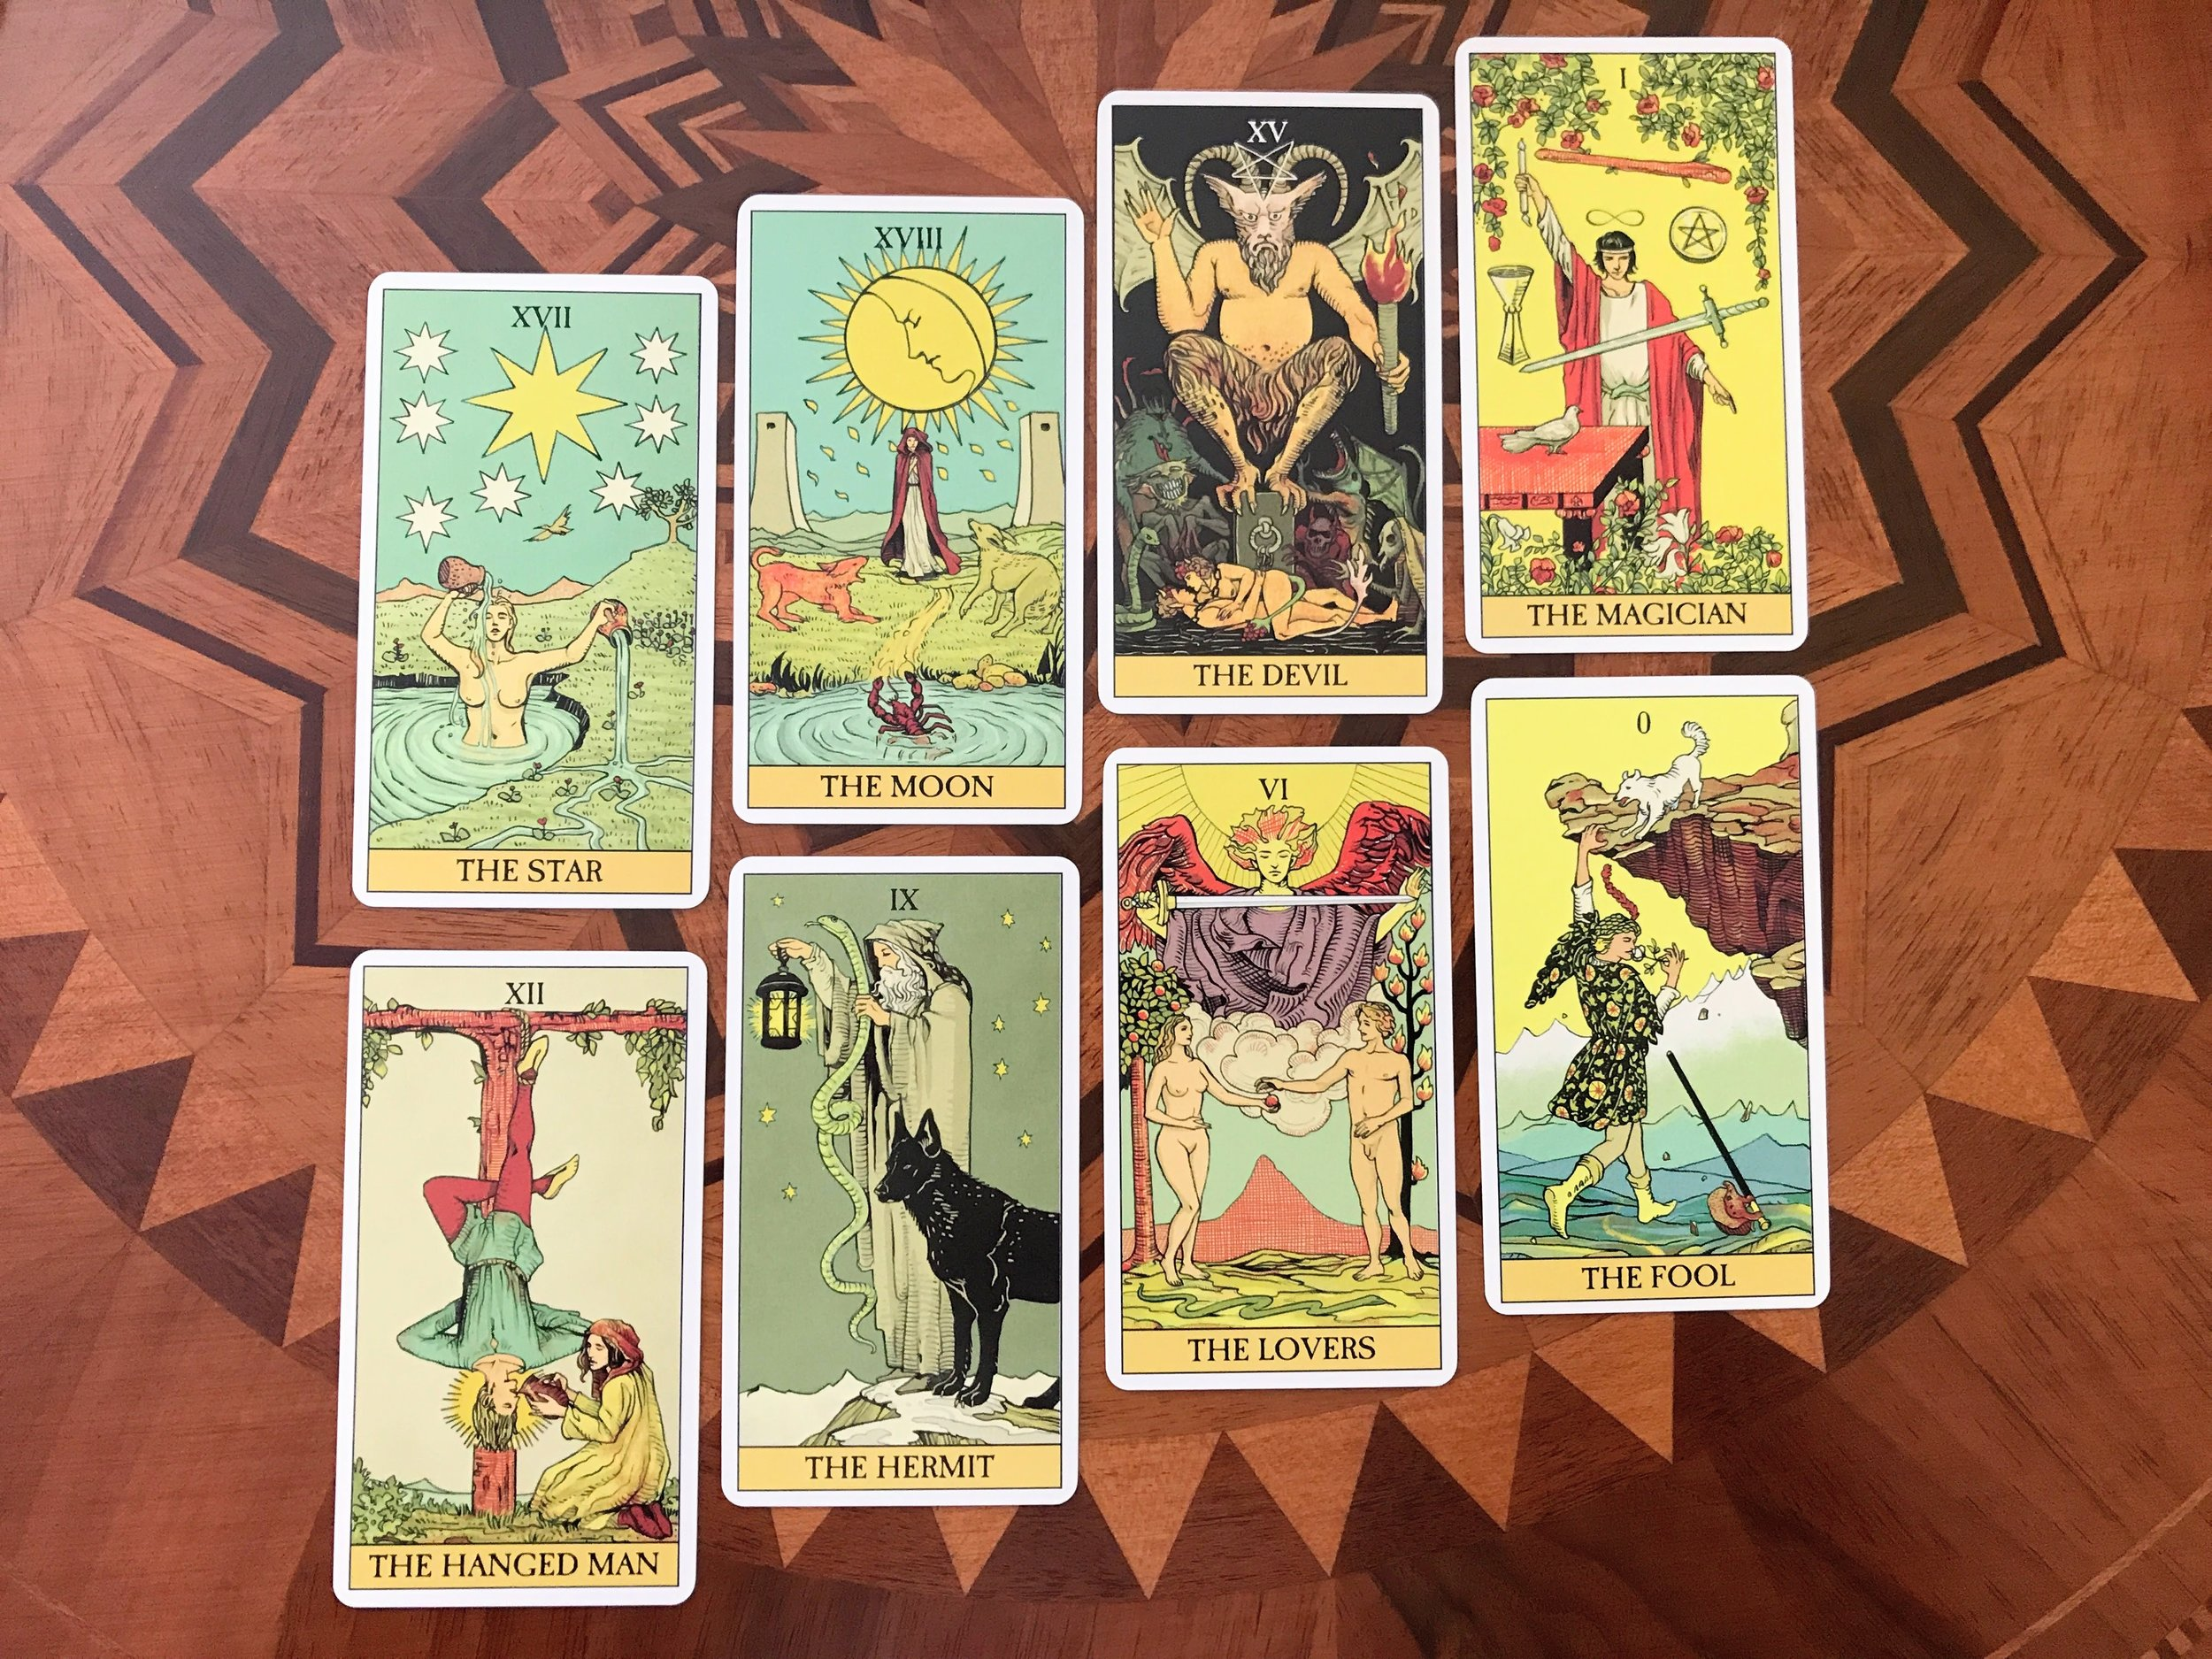 After Tarot - Favorite Major Arcana Cards